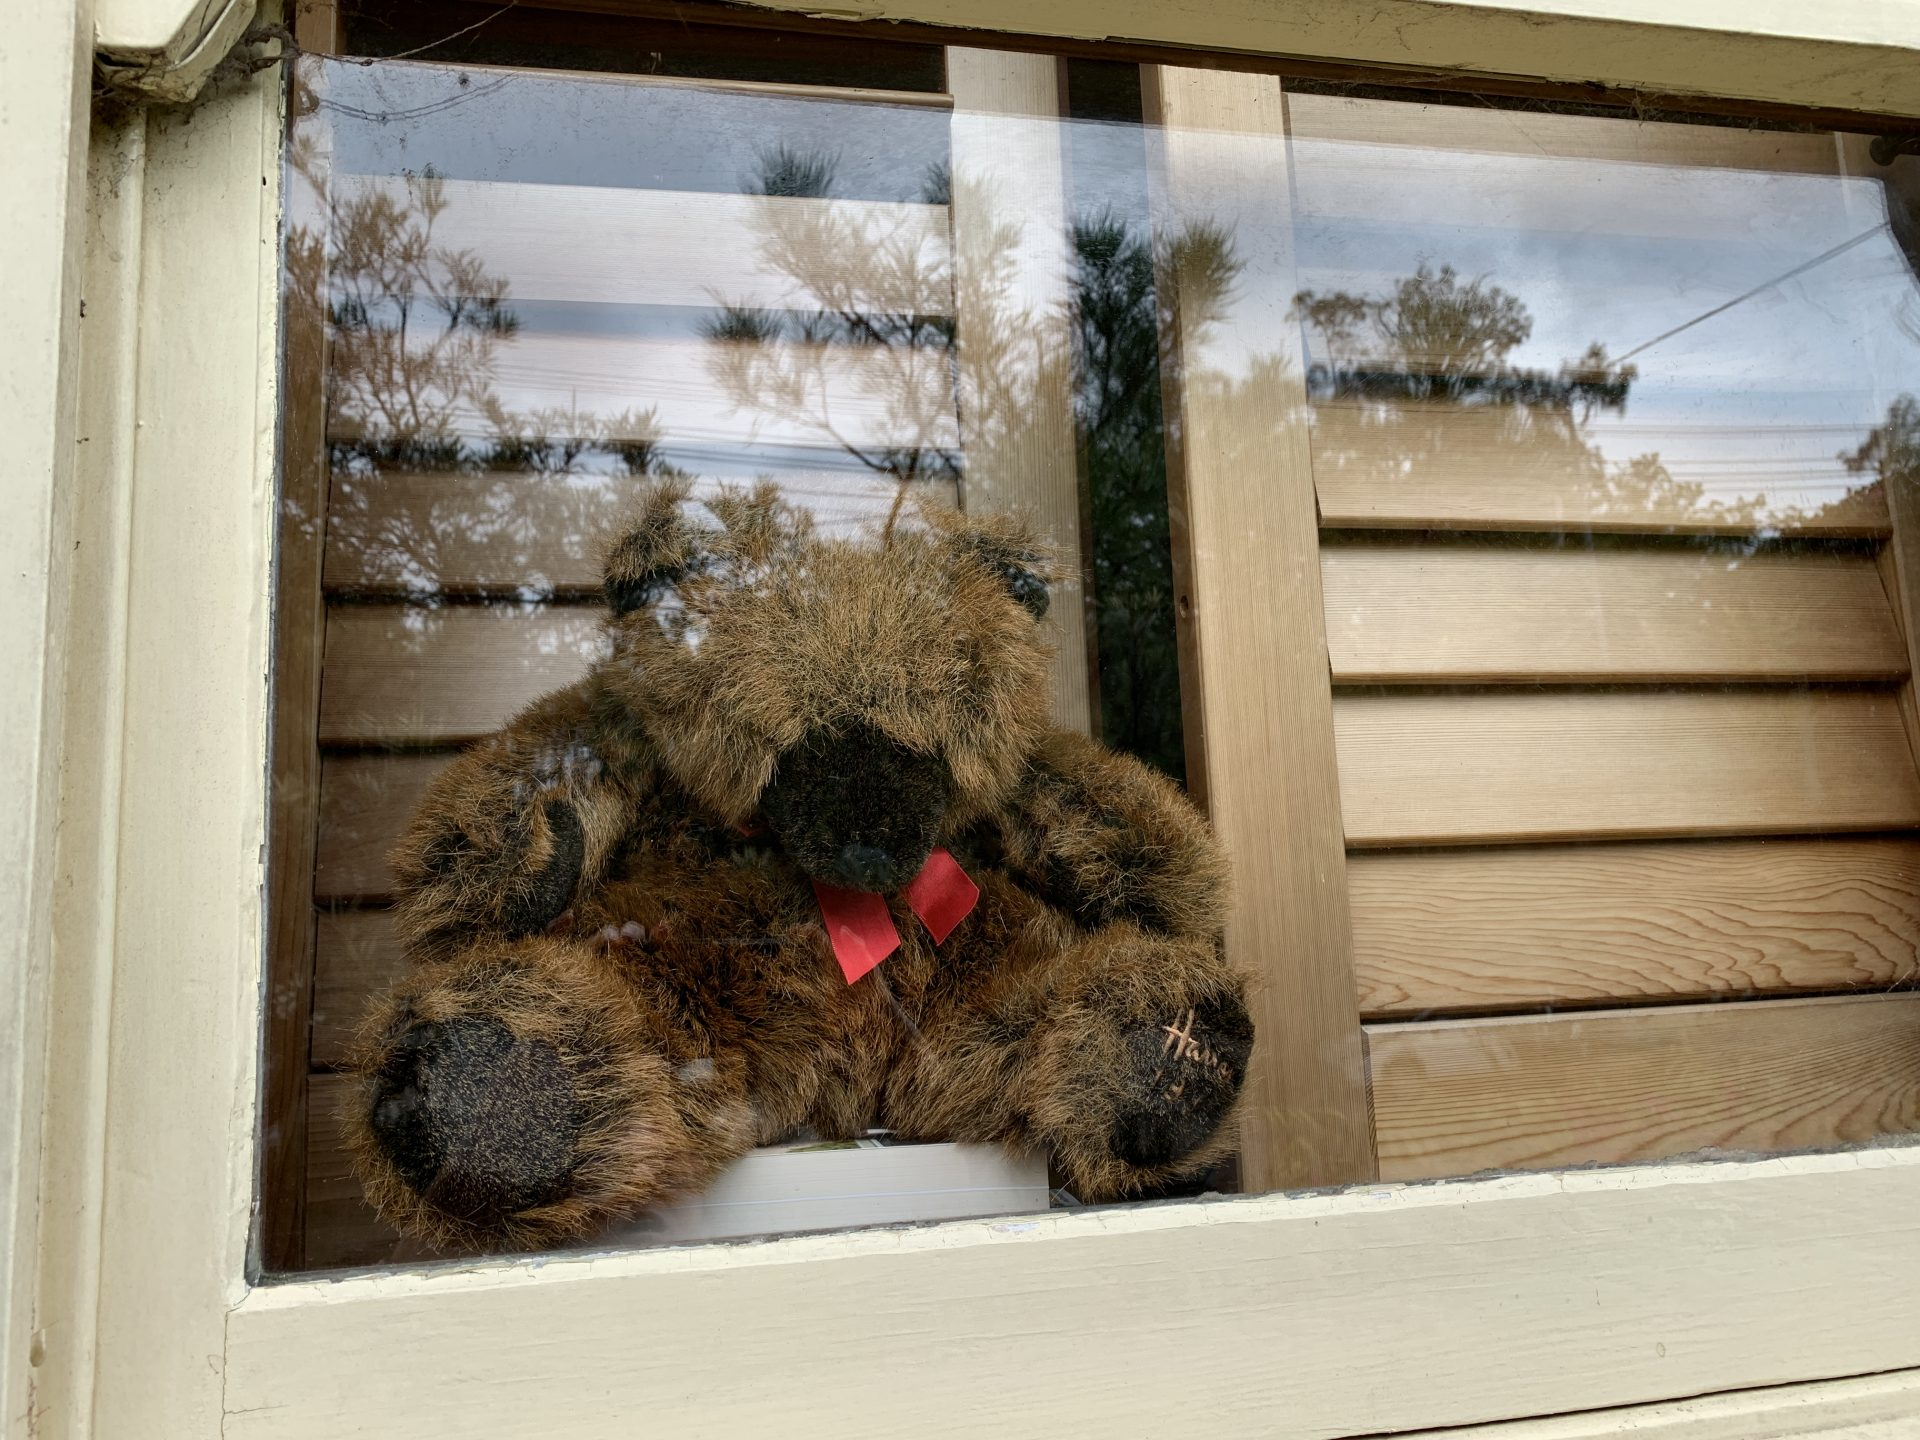 A small brown toy bear sitting in a window behind the glass.